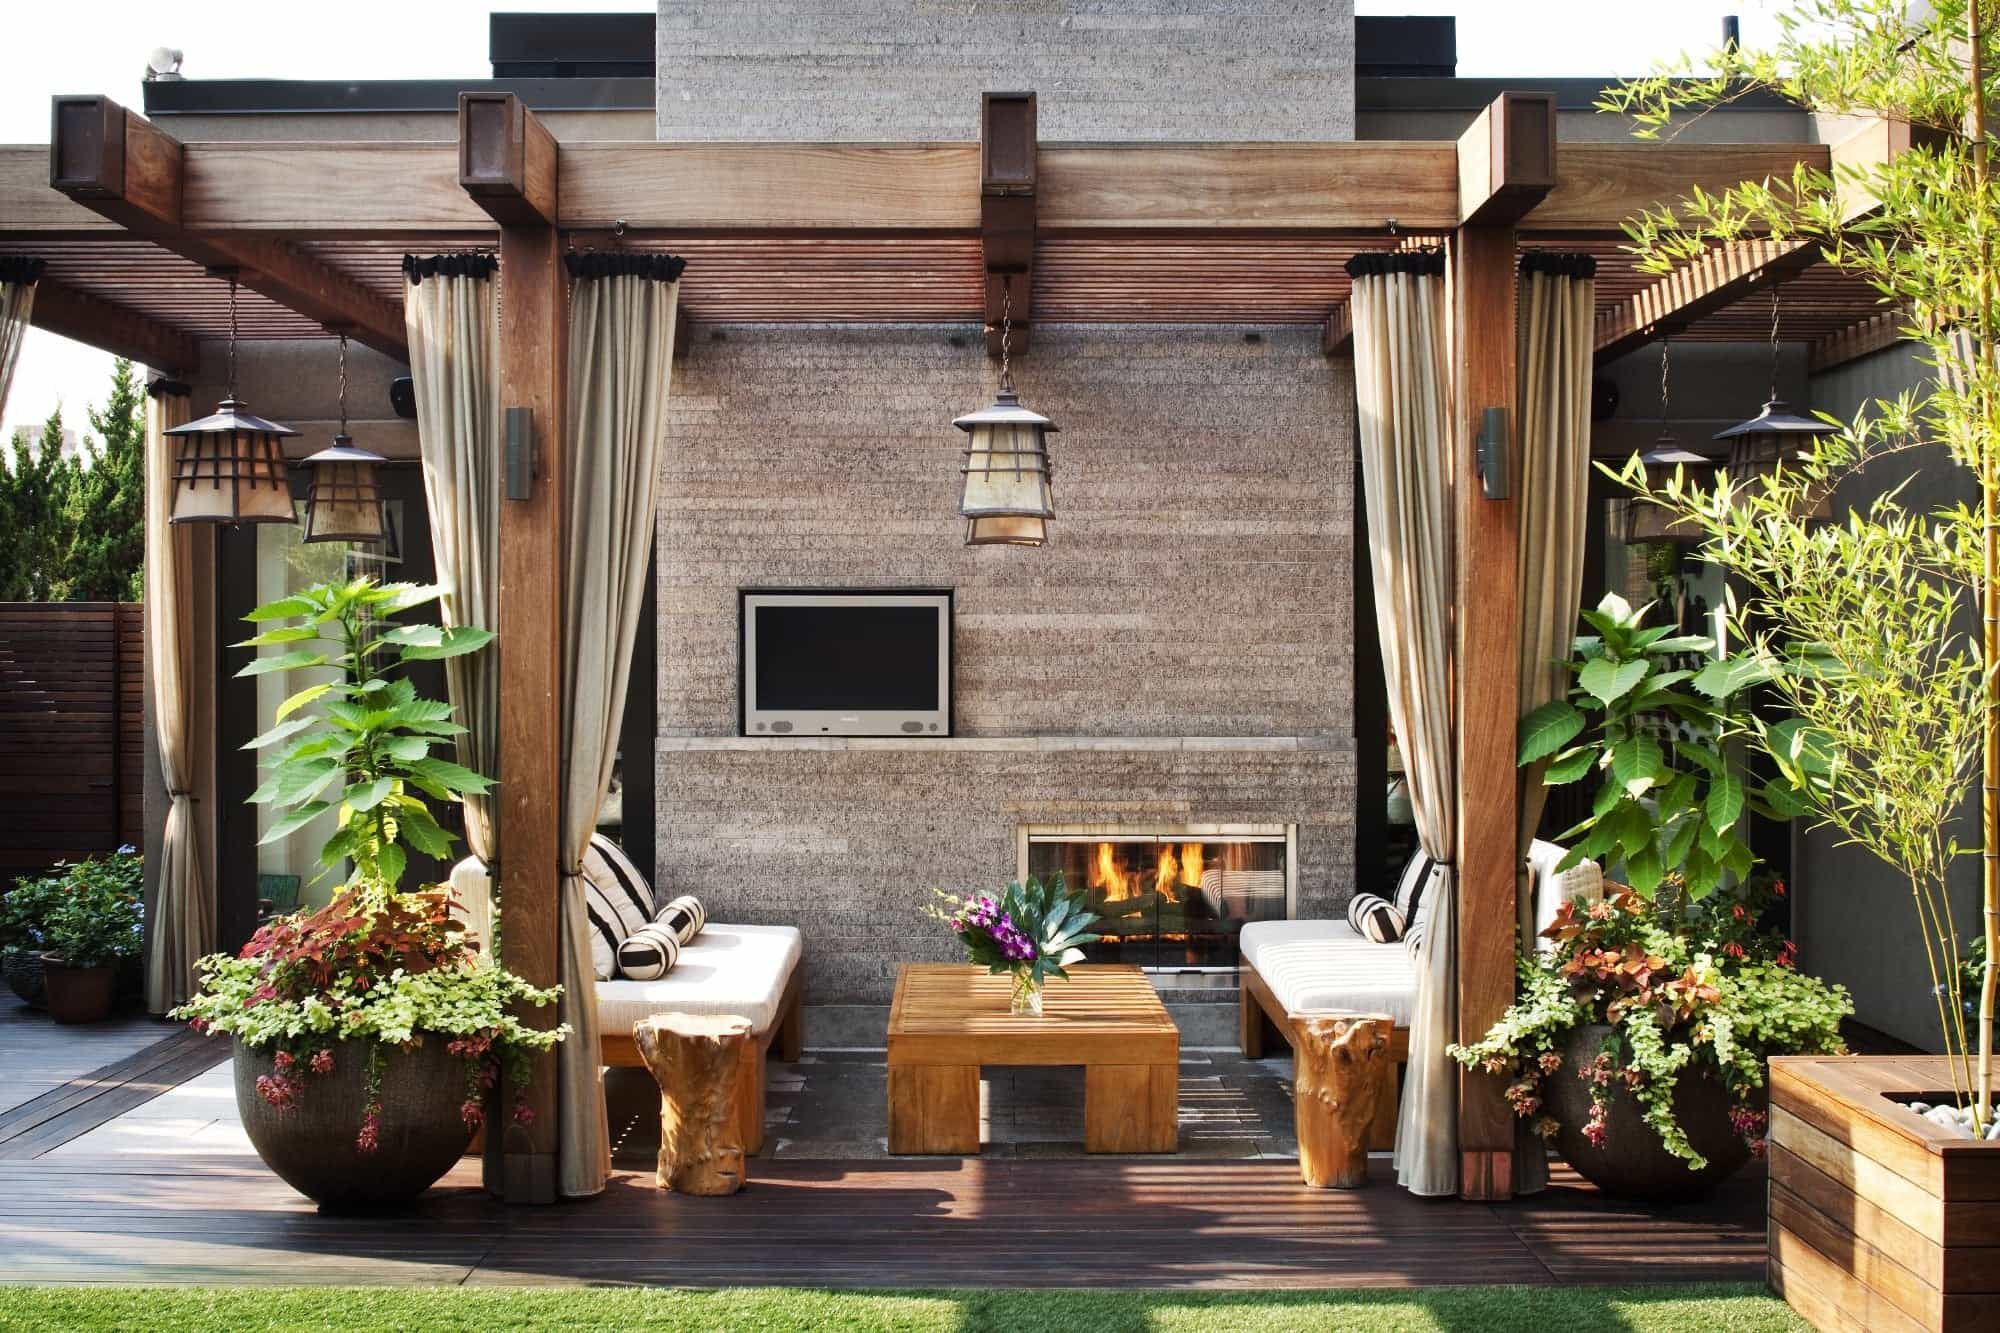 Featured Image of Asian Inspired Outdoor Area With Fireplace